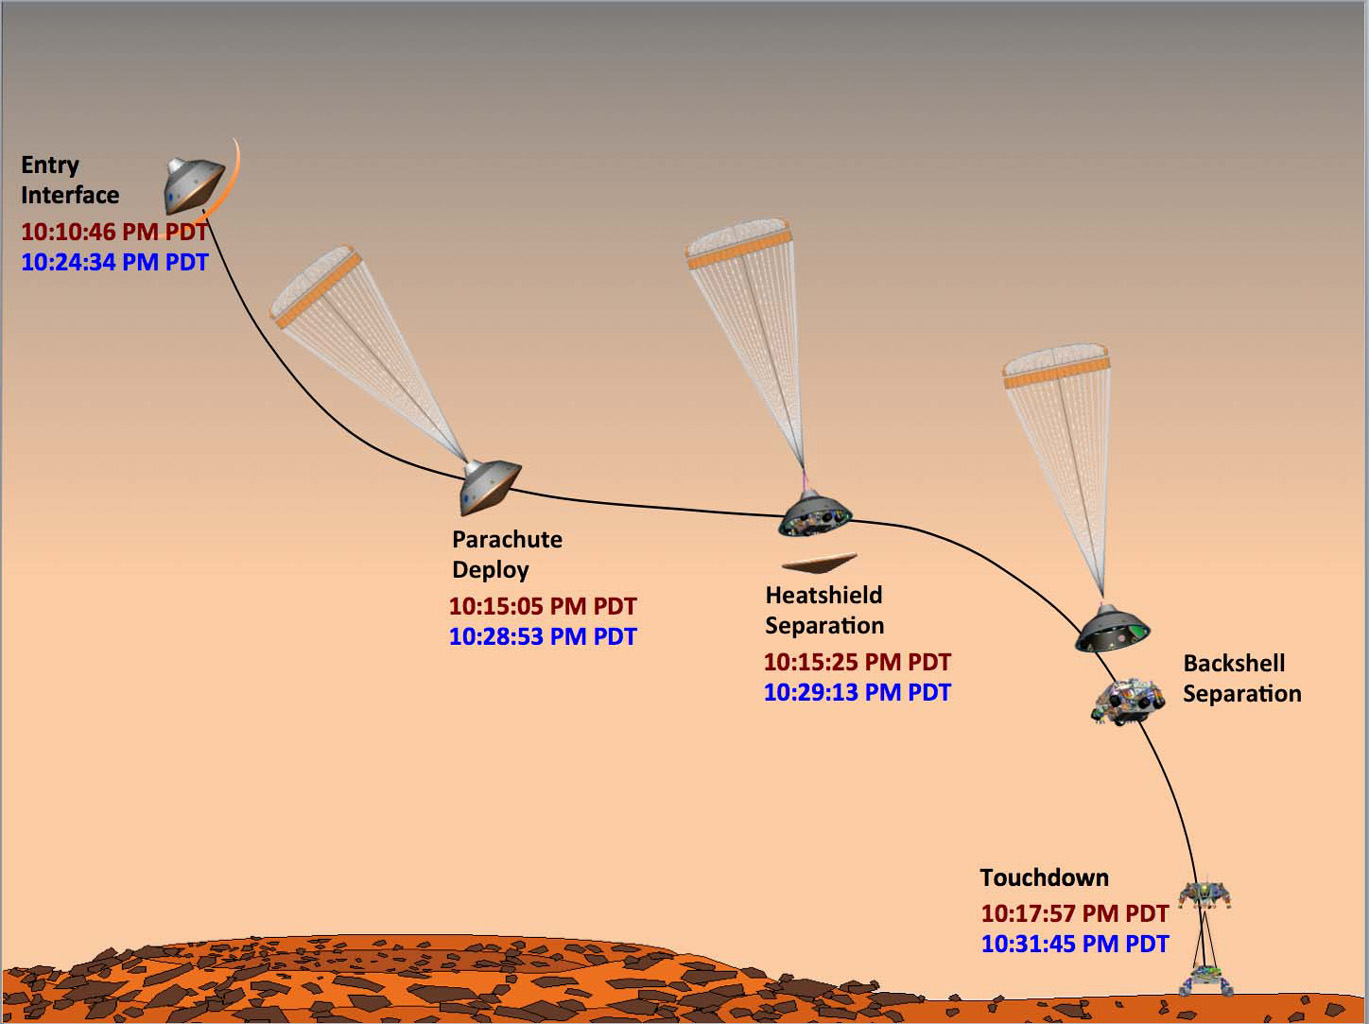 This graphic shows the times at which NASA's Curiosity rover hit its milestones during its entry, descent and landing on Mars. Times the events actually occurred are in red; times that Earth received confirmation that events occurred appear in blue.